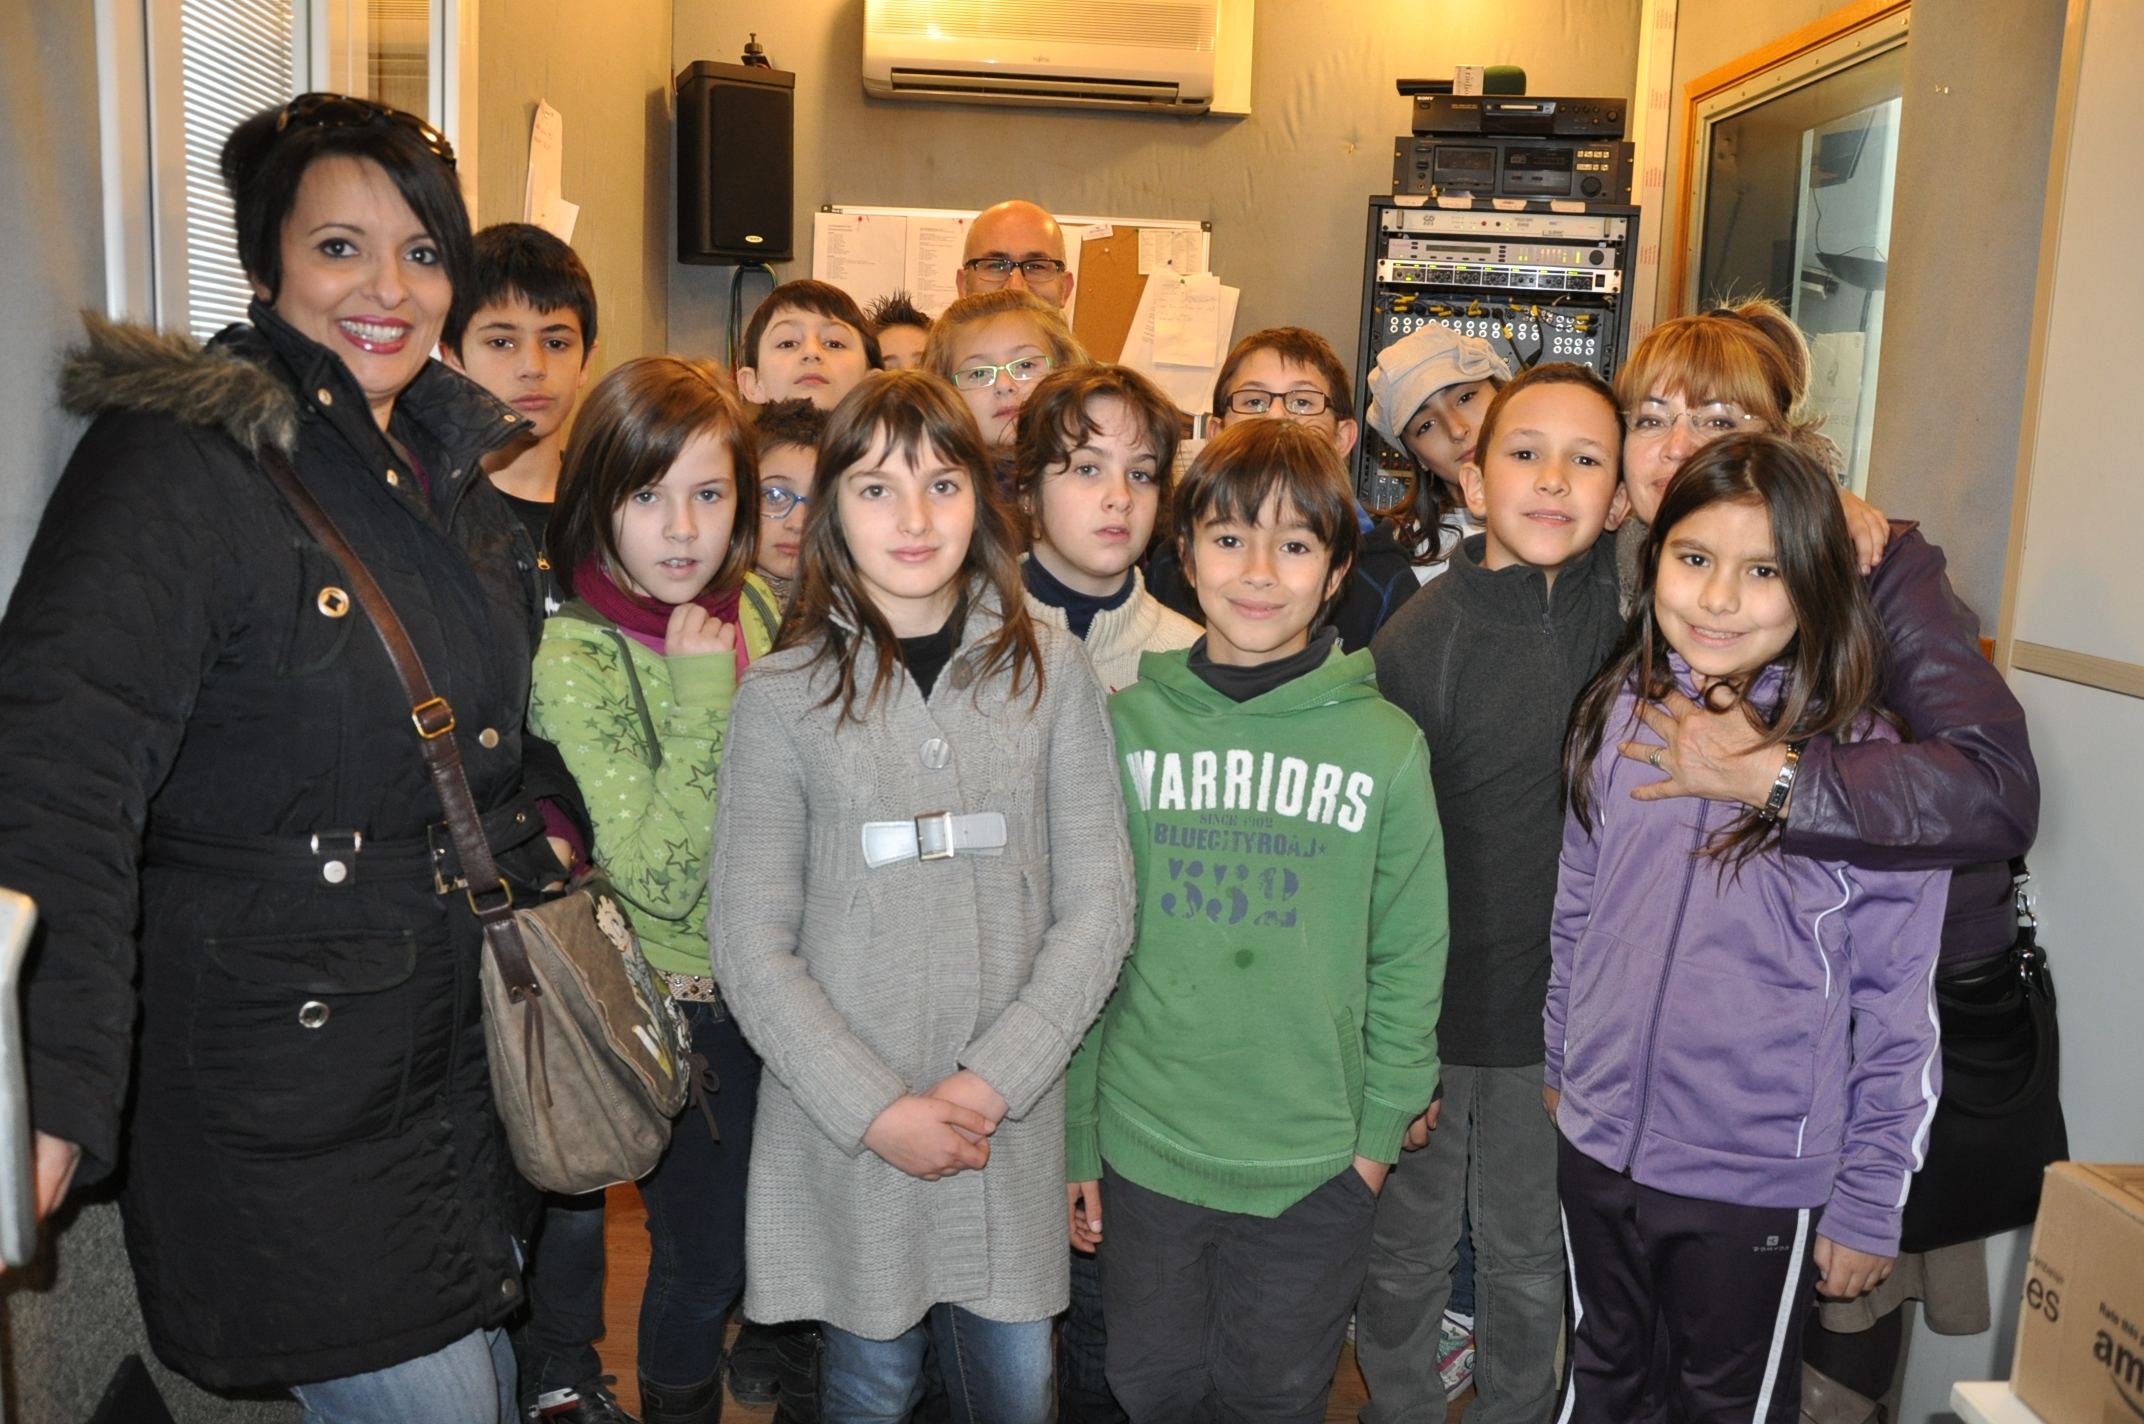 Desenes d'alumnes visiten la r&#224;dio -Imatge 1-